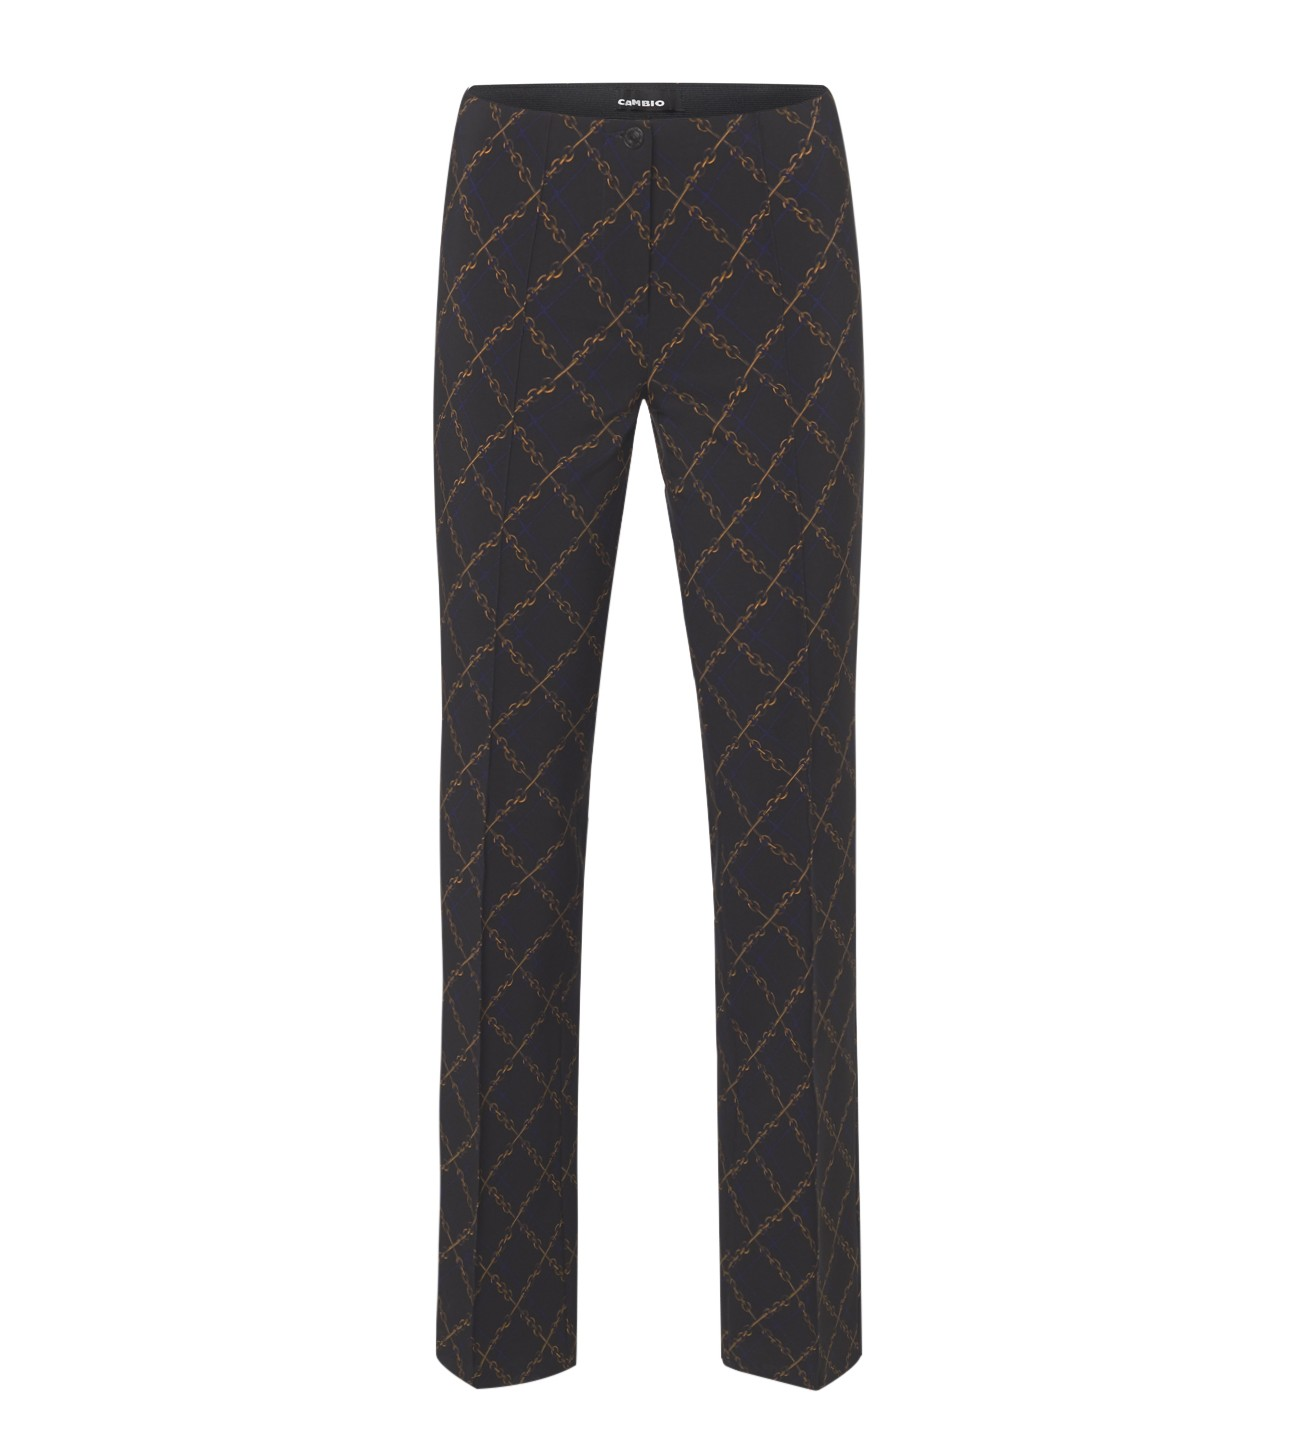 CAMBIO_LINKS_PRINT_BOOTCUT_TROUSERS_MARIONA_FASHION_CLOTHING_WOMAN_SHOP_ONLINE_0350/01